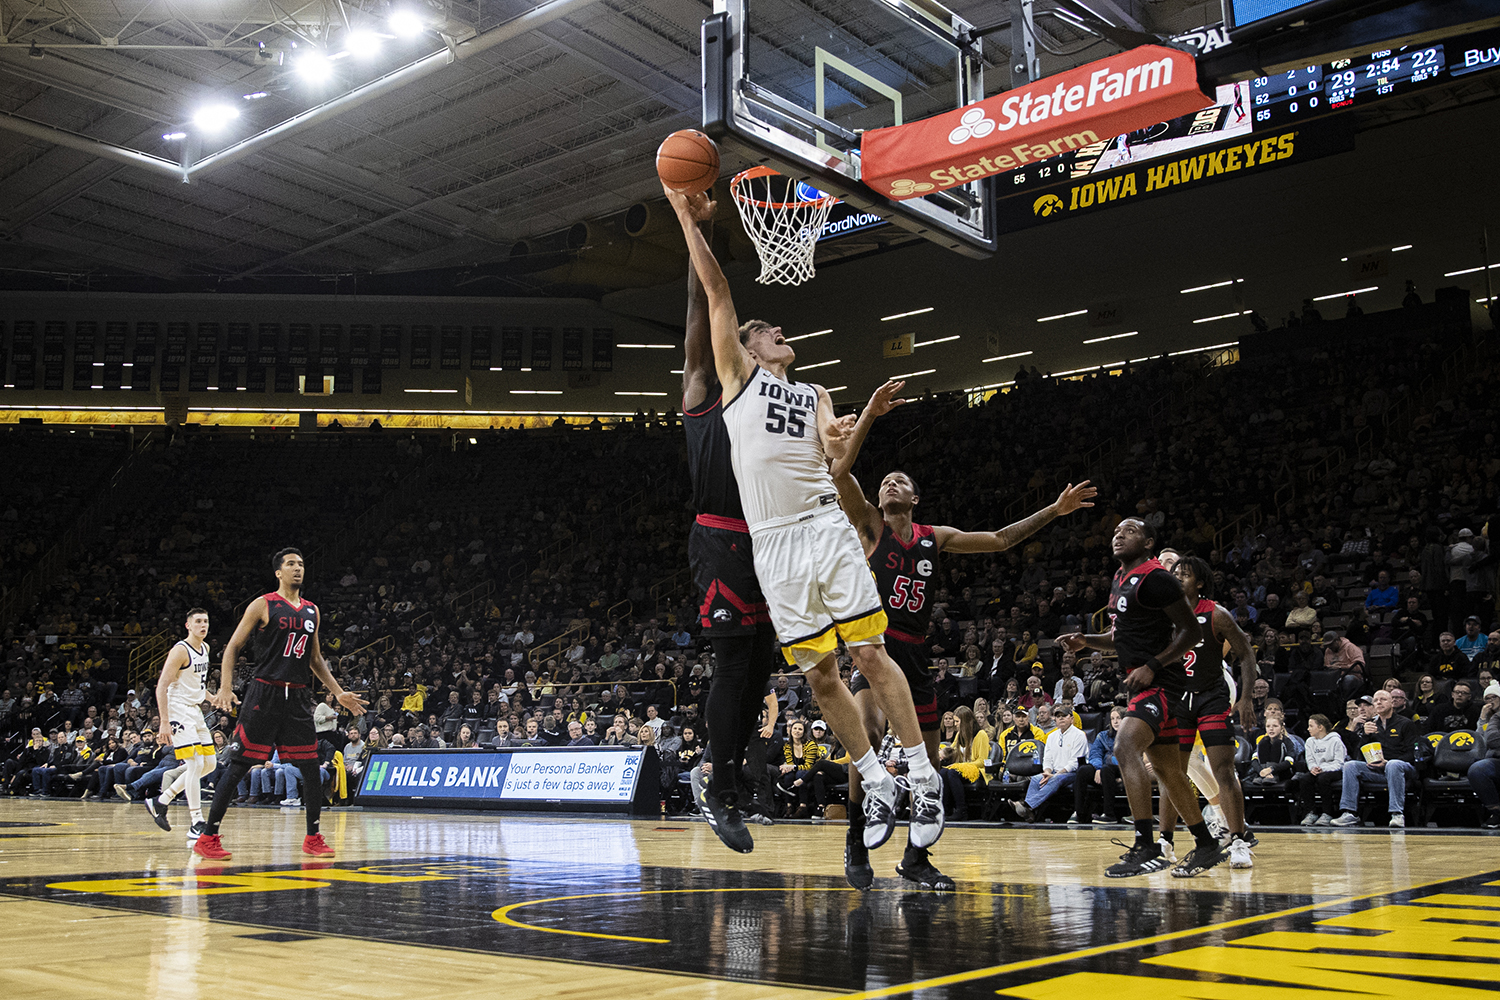 Iowa center Luka Garza goes for a layup during a men's basketball game between Iowa and SIUE at Carver-Hawkeye Arena on Friday, Nov. 8, 2019.